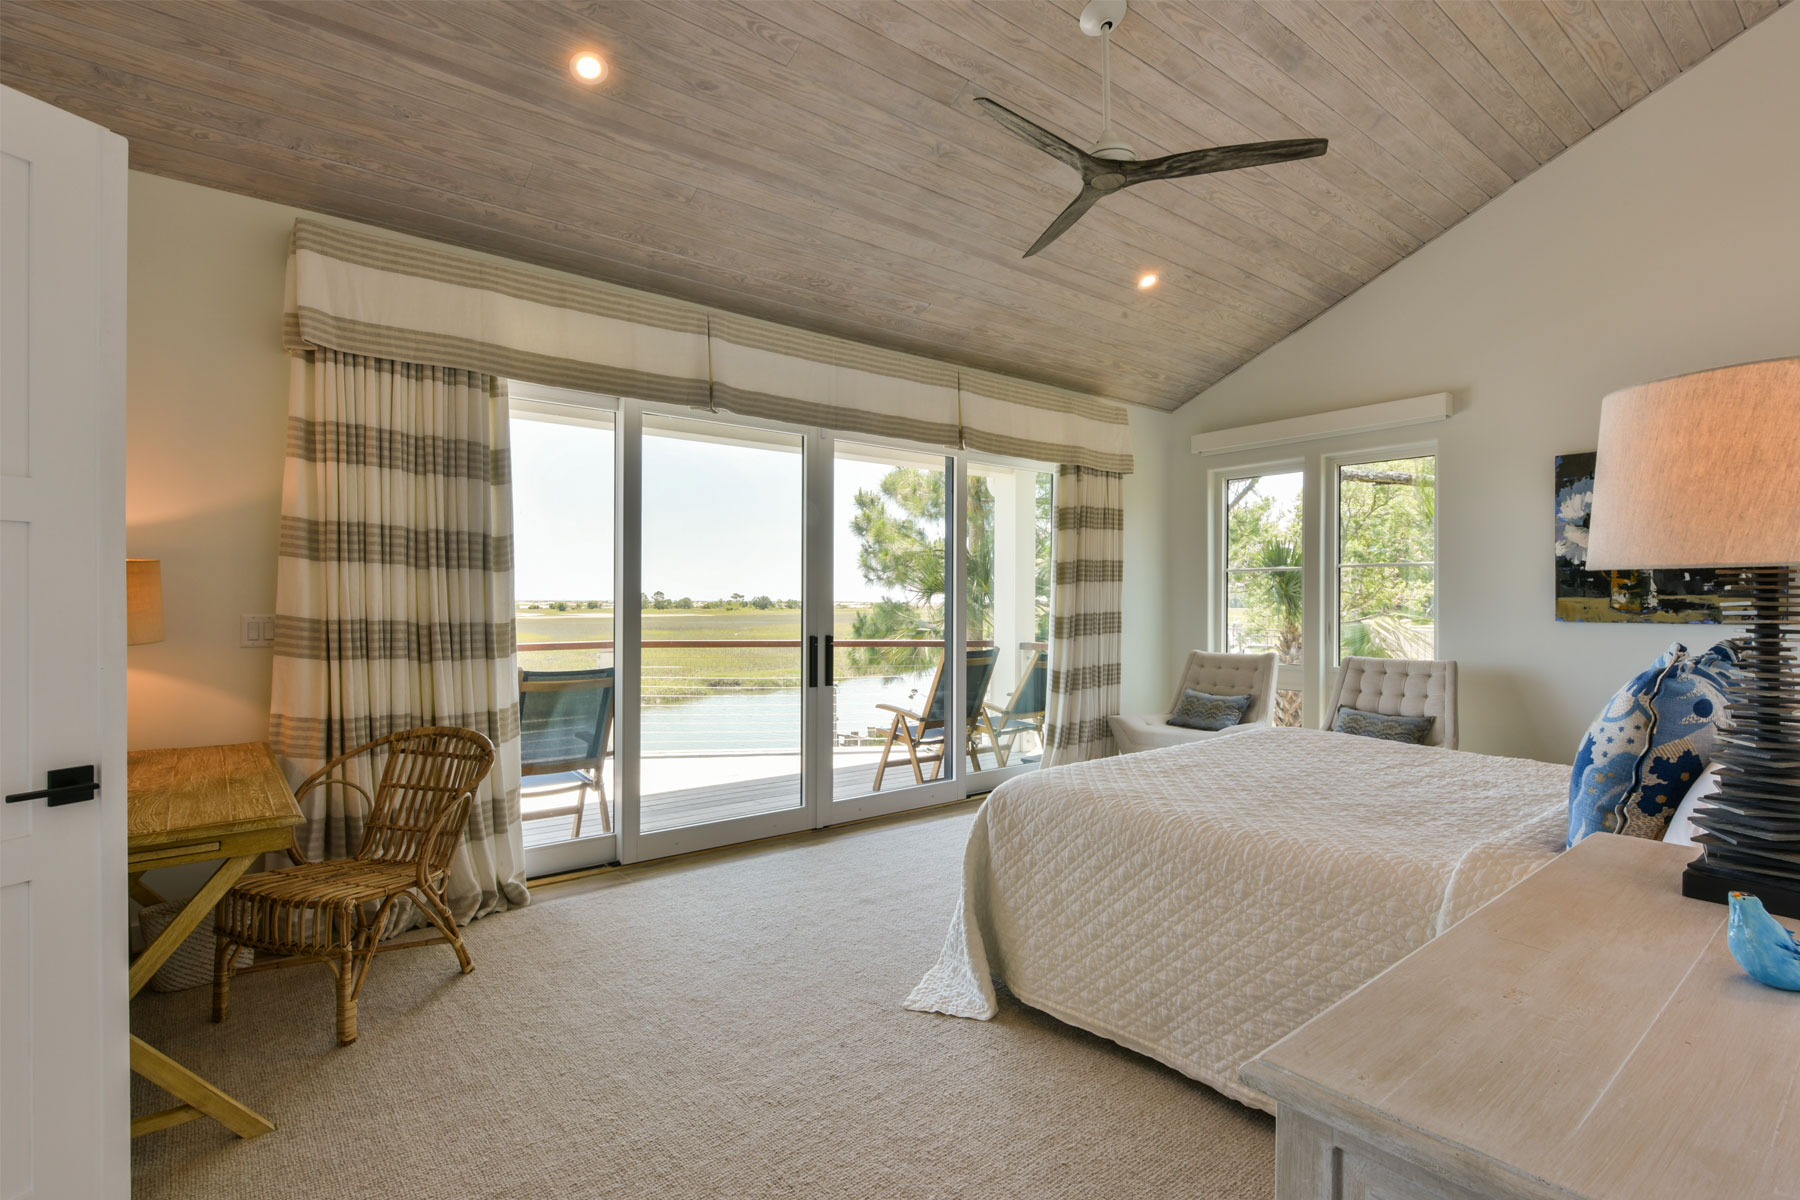 Renovated master bedroom with waterway view